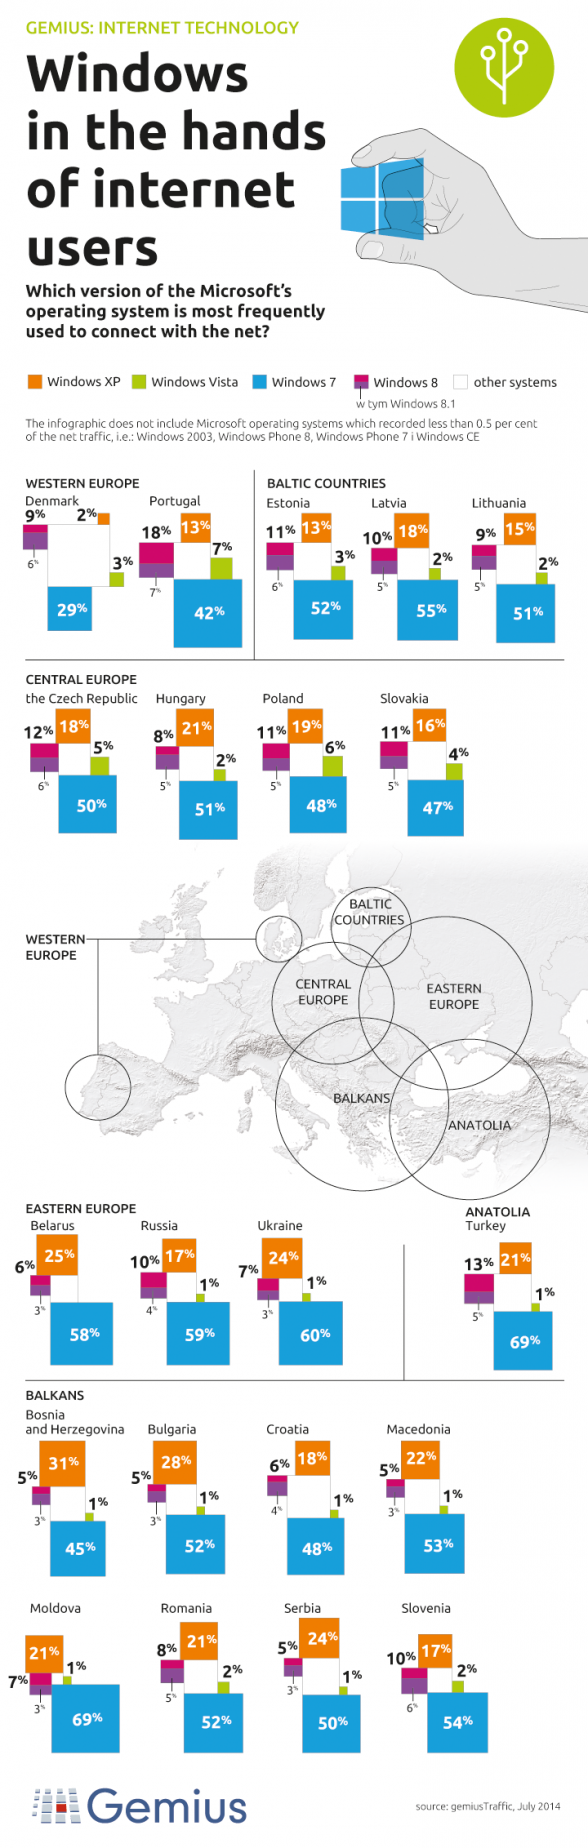 Windows_in_the_hands_of_internet_users_INFOGRAPHIC_GEMIUS